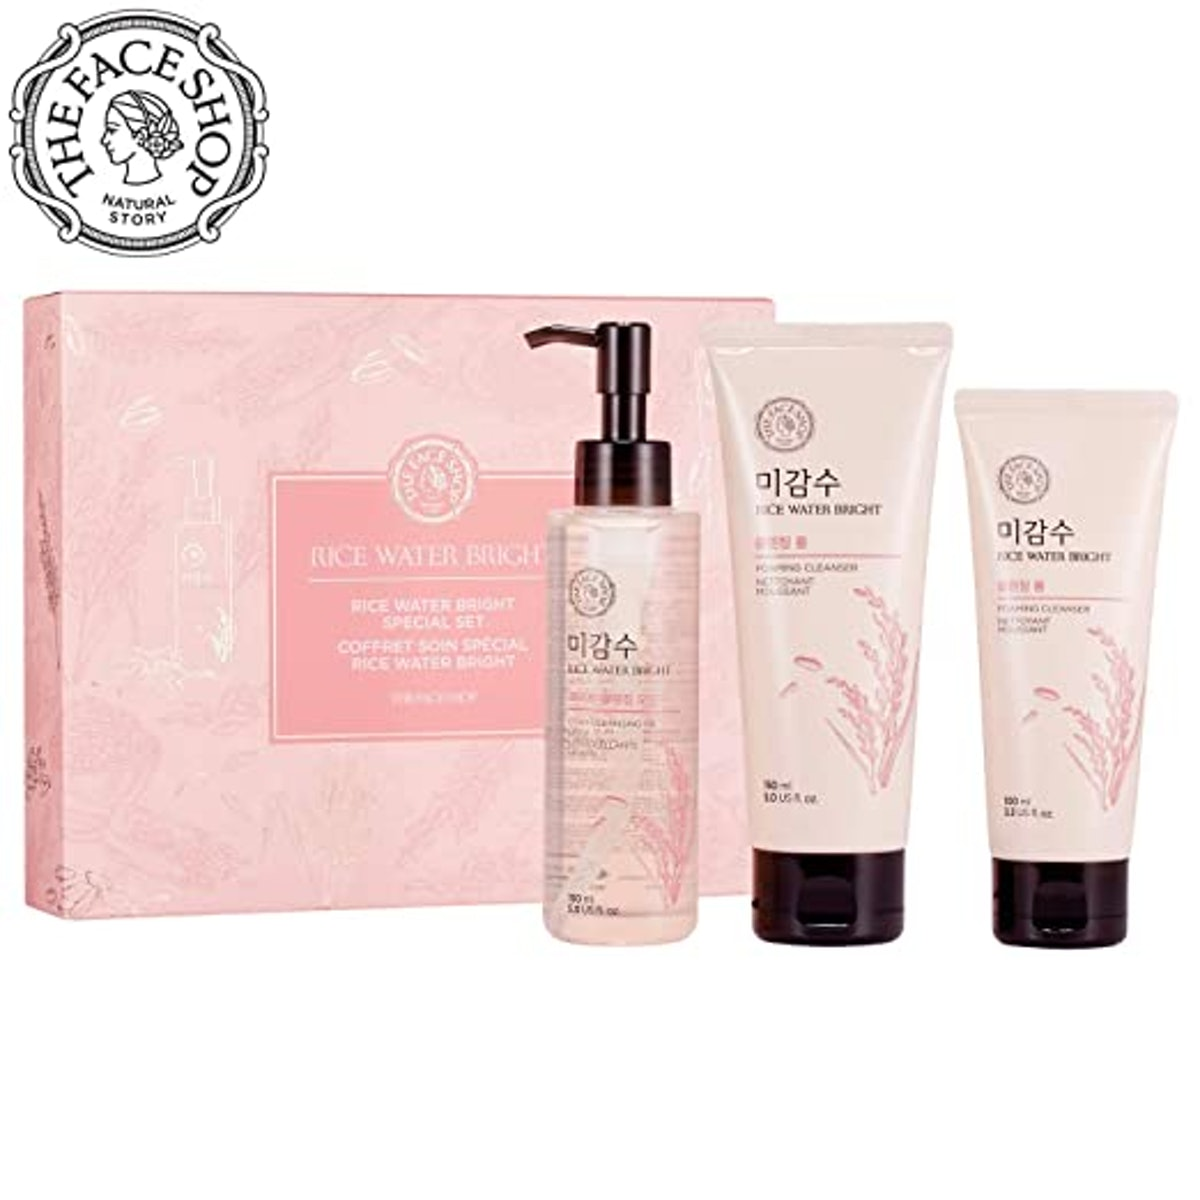 THE FACE SHOP Rice Water Bright Set (3-Piece)